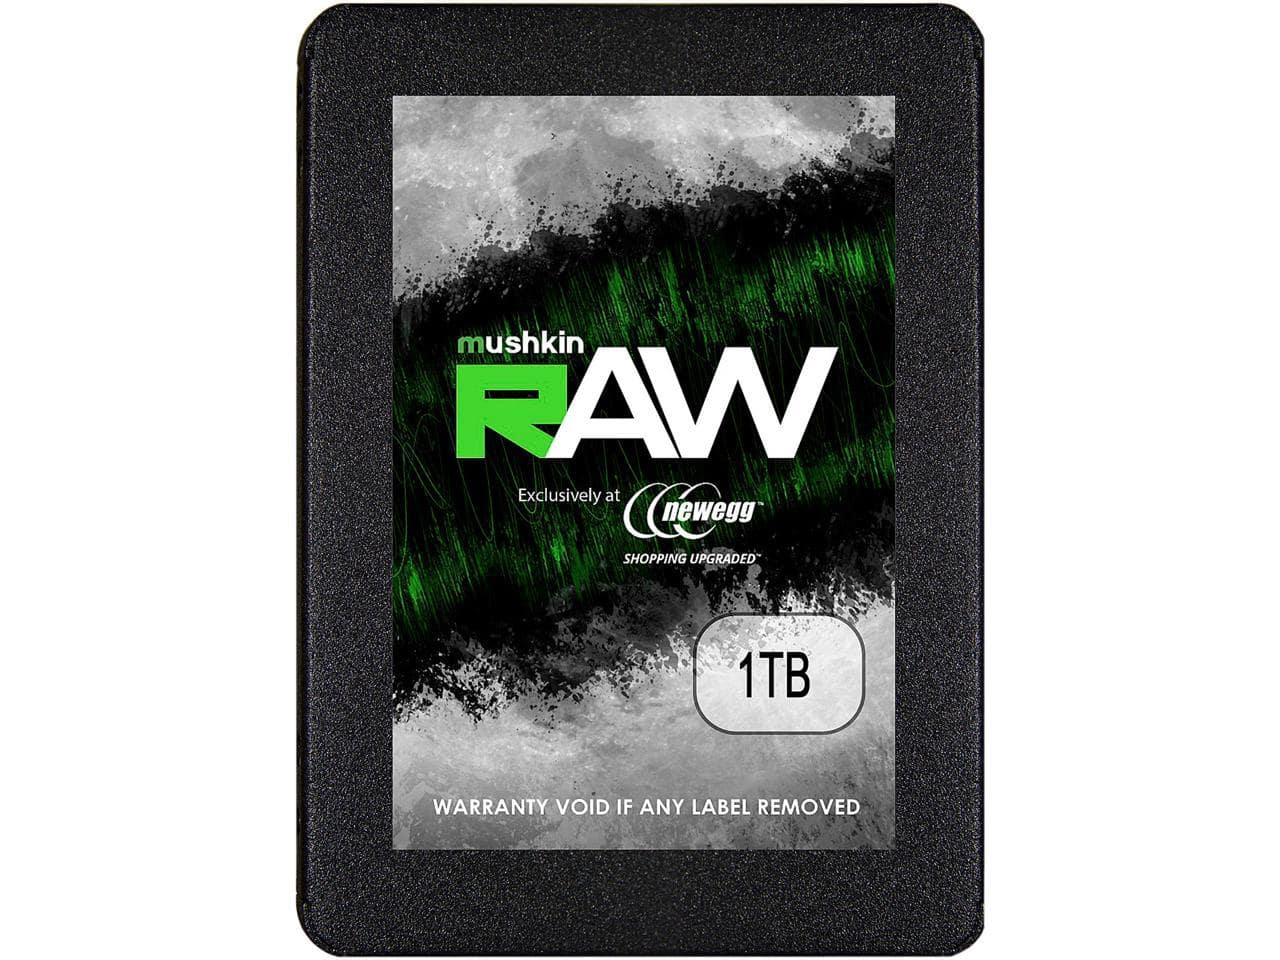 "Mushkin Enhanced RAW Series 2.5"" 1TB SATA III 3D TLC Internal Solid State Drive (SSD) $87"